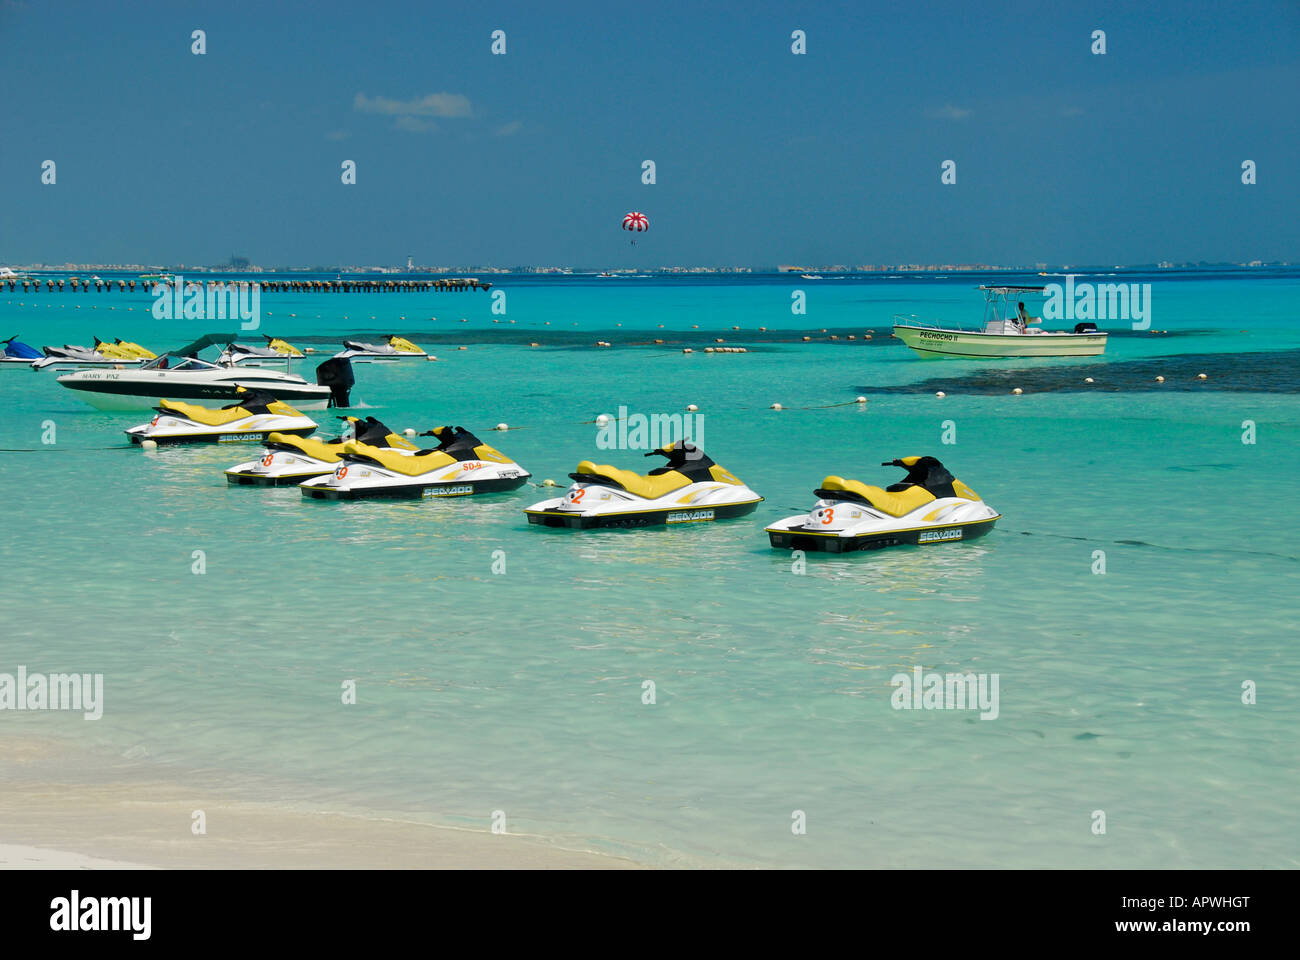 Bay with jetskis in Cancun hotel area, Quintana Roo State, Mexico, North America Stock Photo